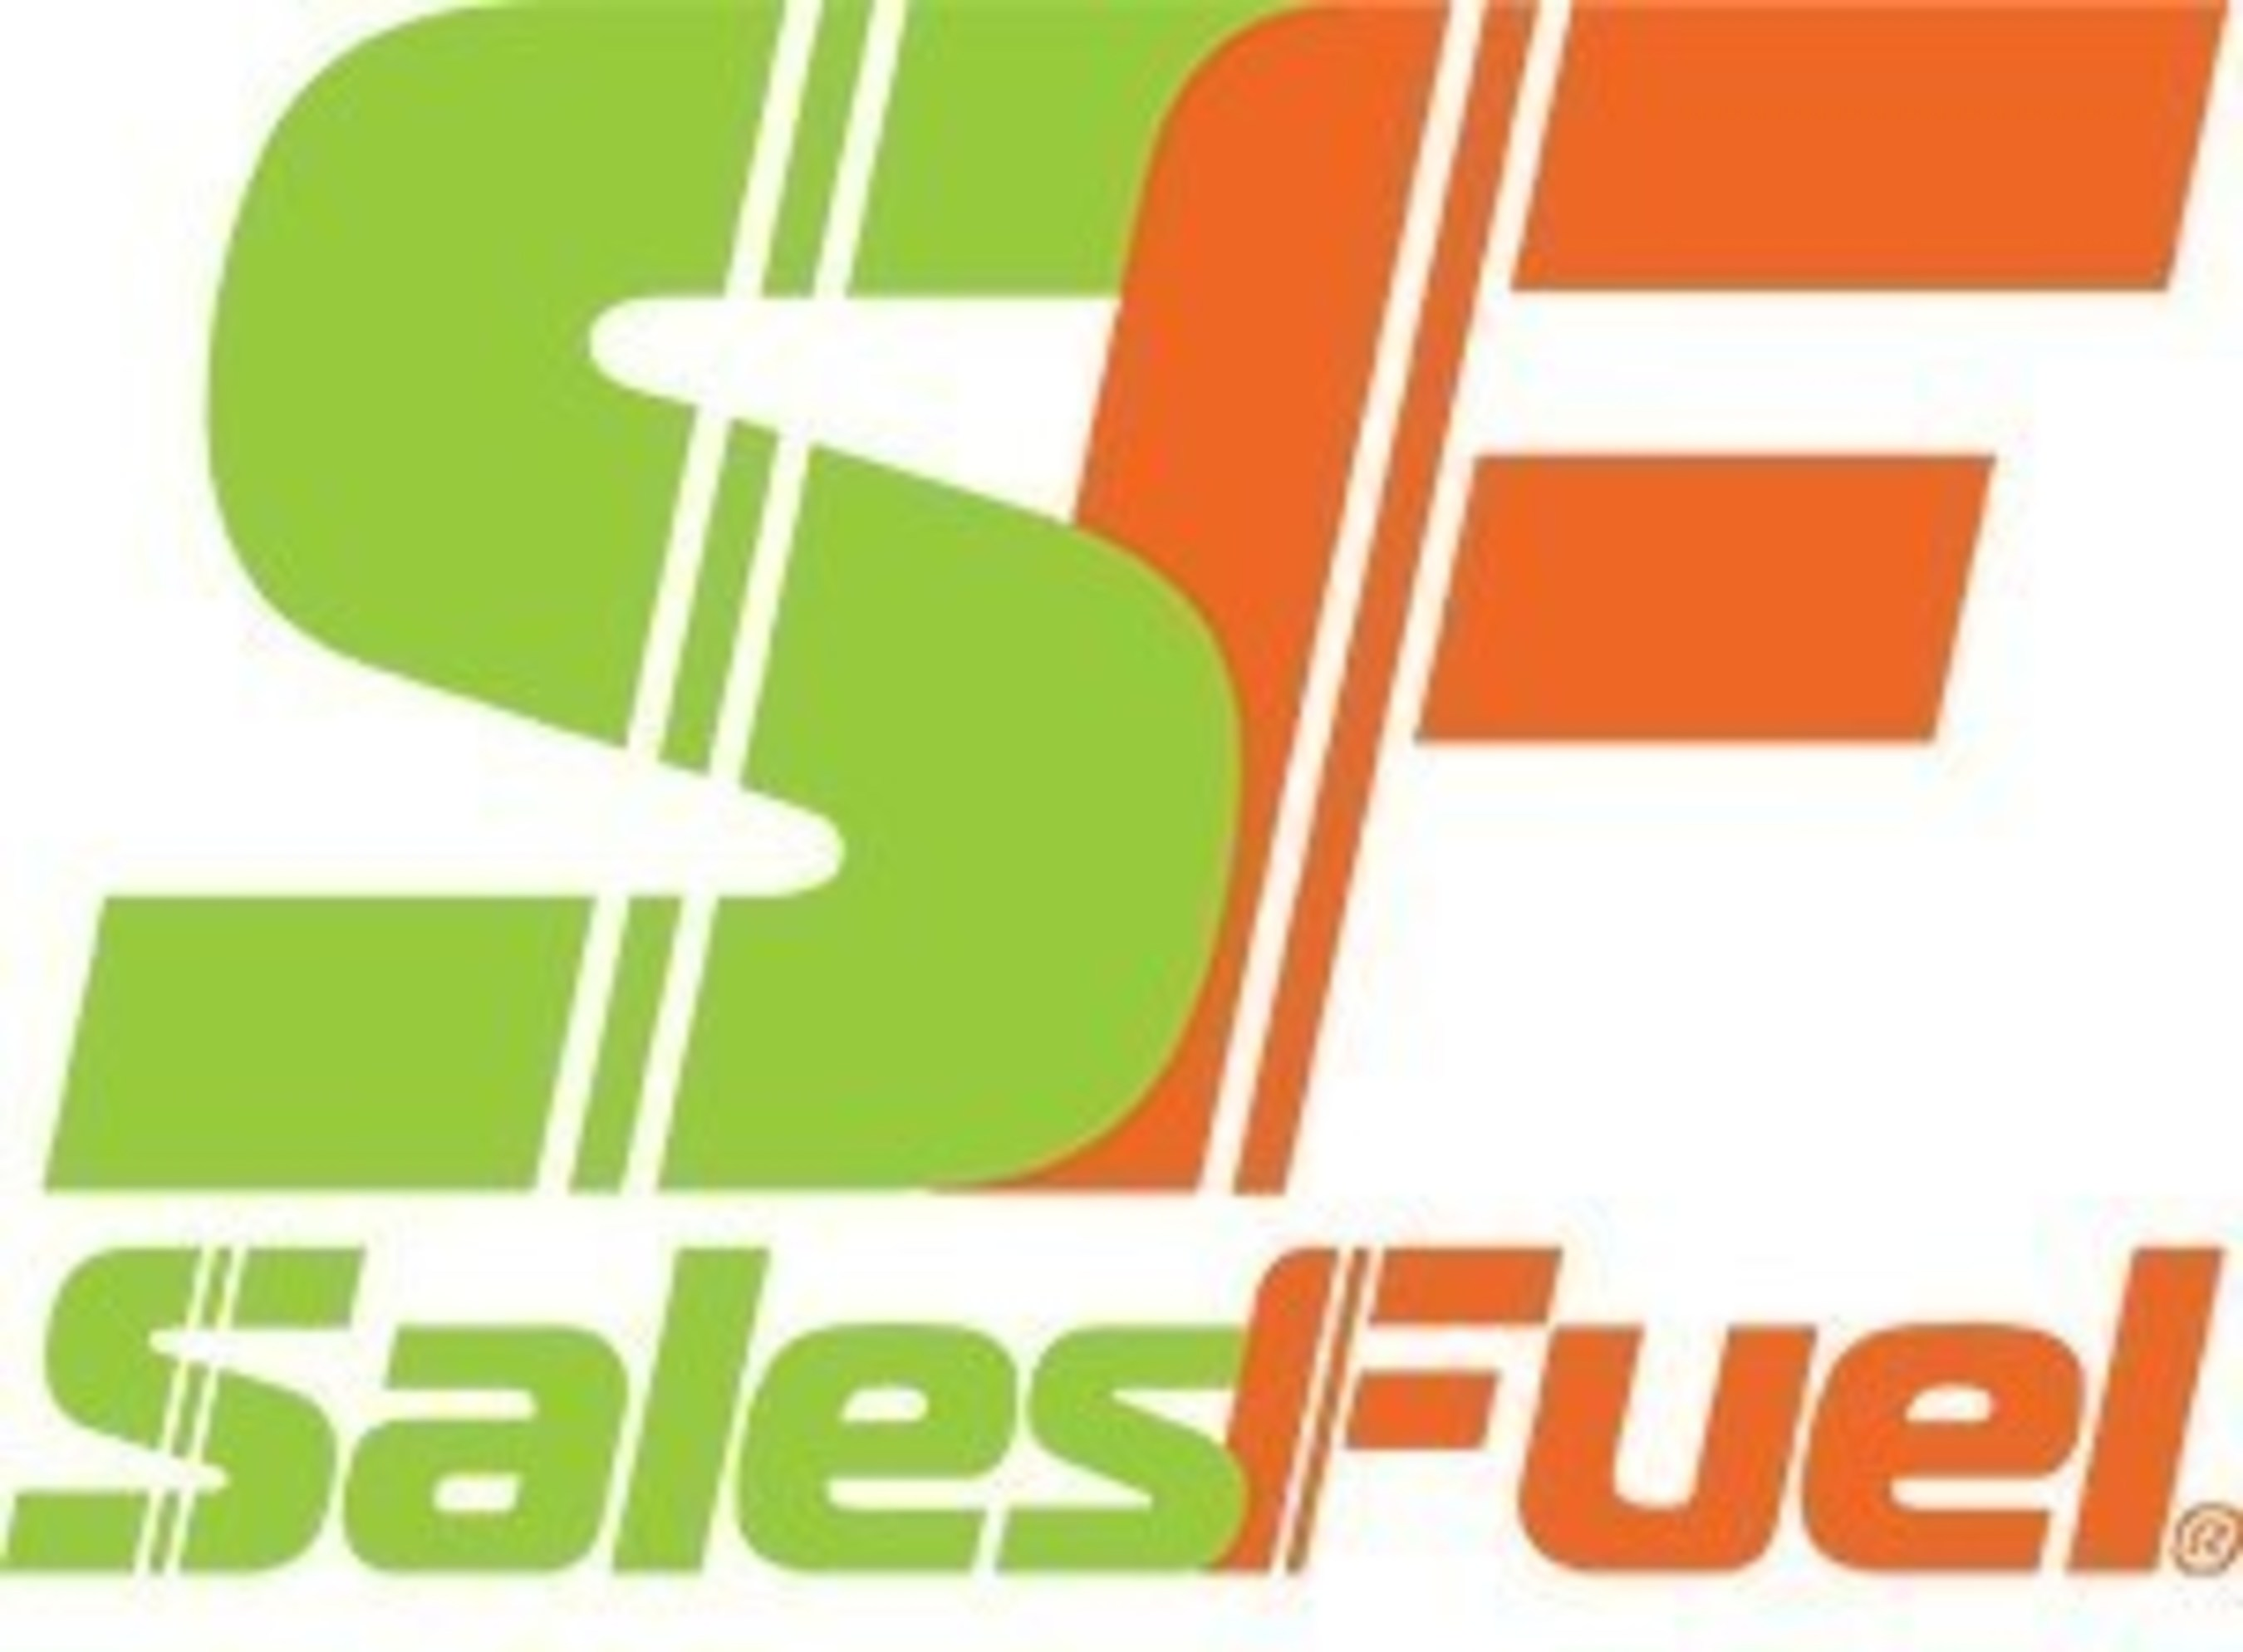 SalesFuel Expands Partnership With Digital First Media, Providing AdMall' PRO Product